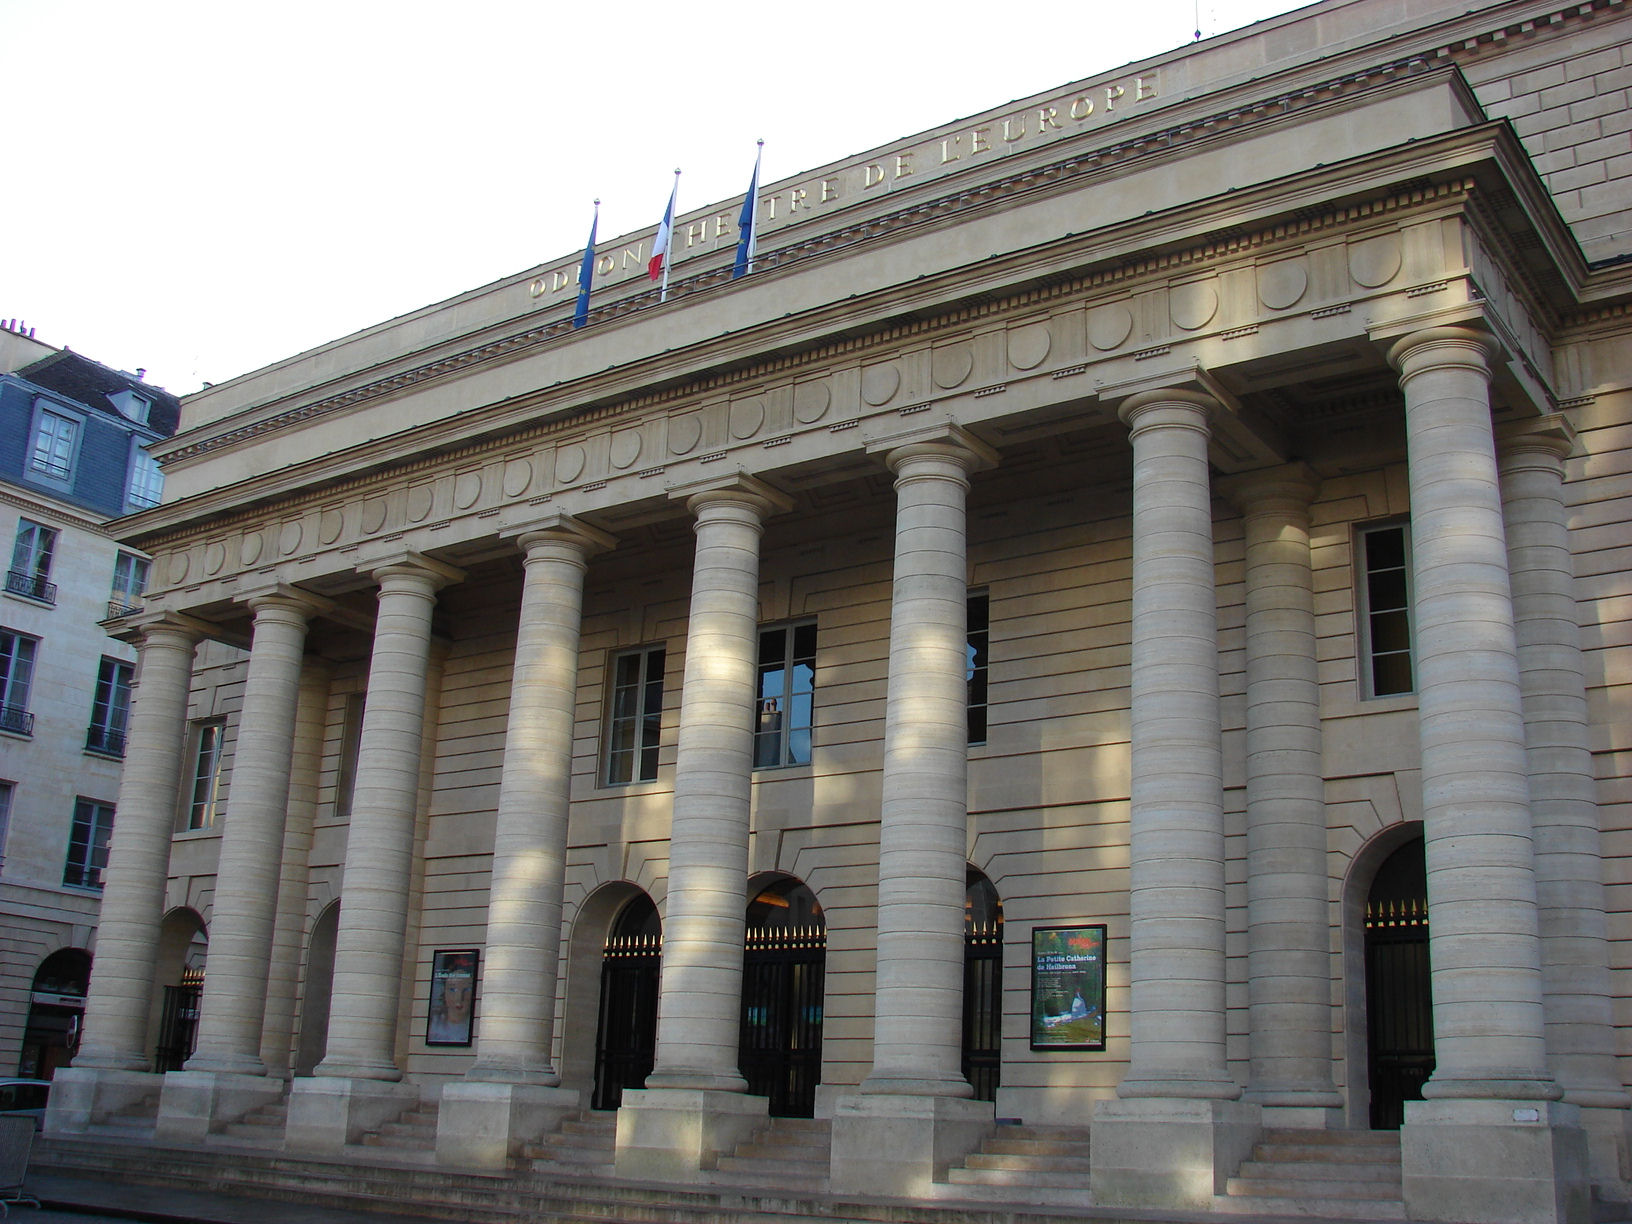 Odéon Theater